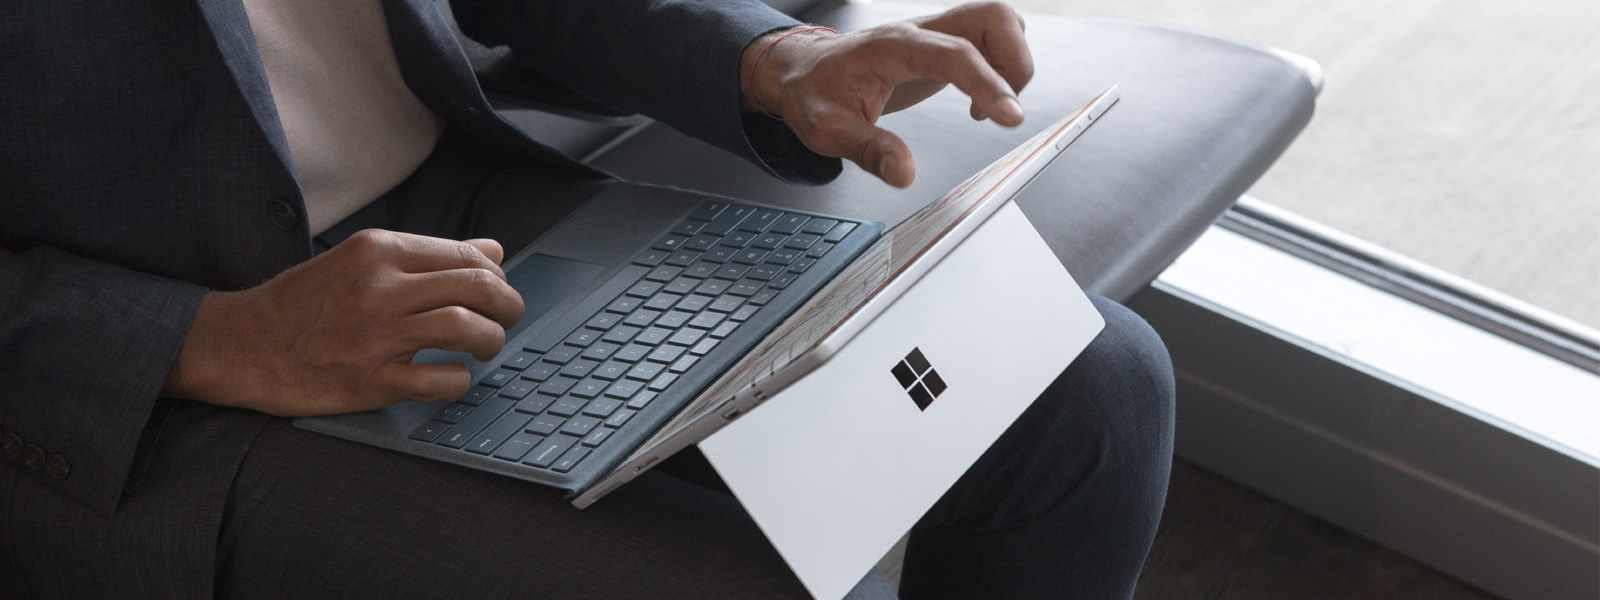 Two woman use Surface Book 2 with keyboard folded under in a café setting.